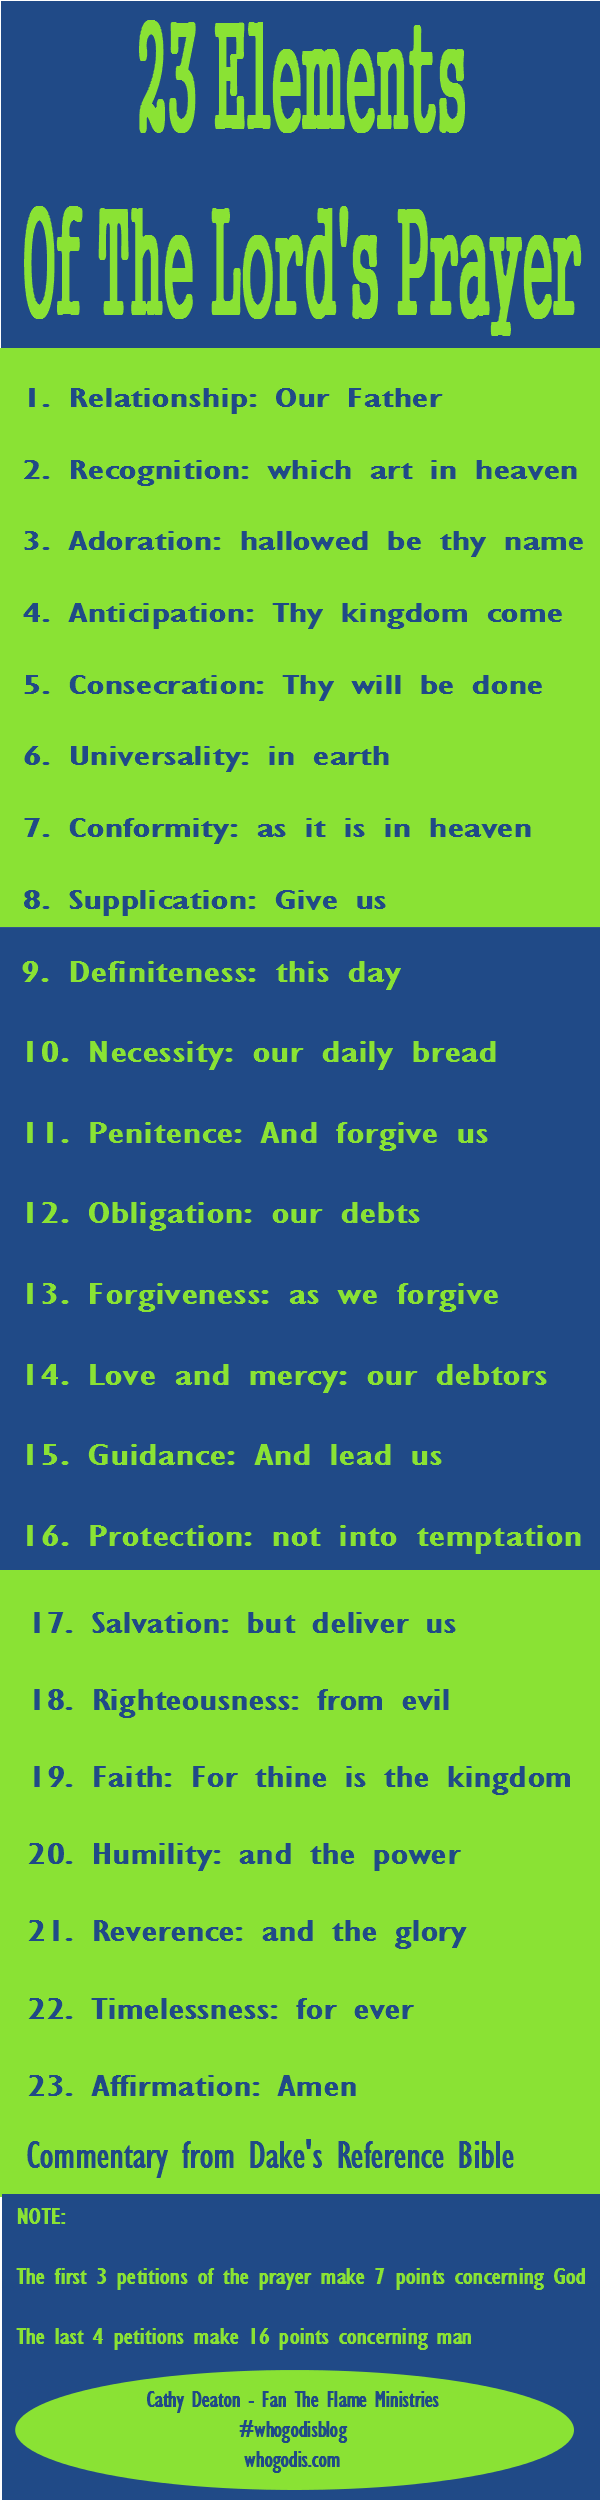 23-elements-lords-prayer